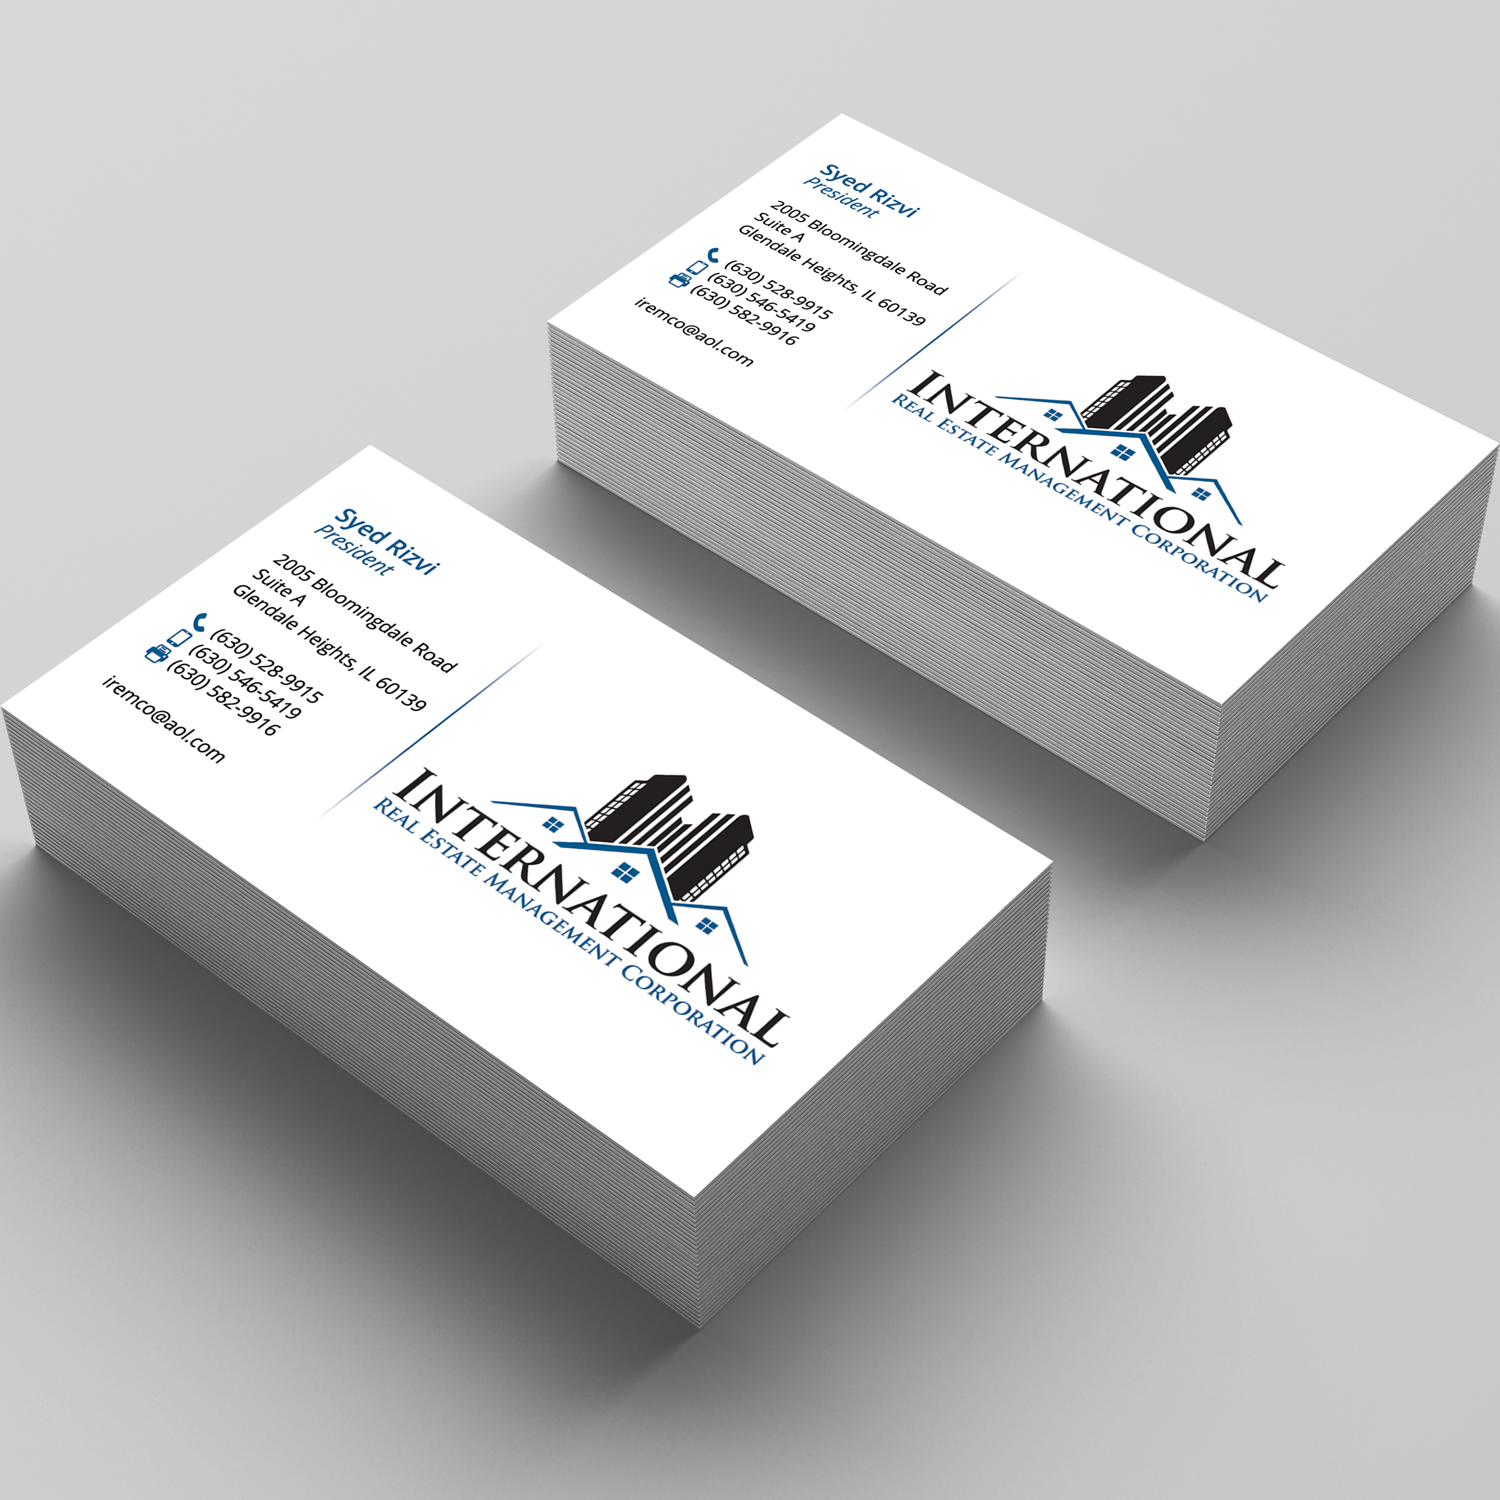 Elegant Playful Real Estate Business Card Design For A Company By